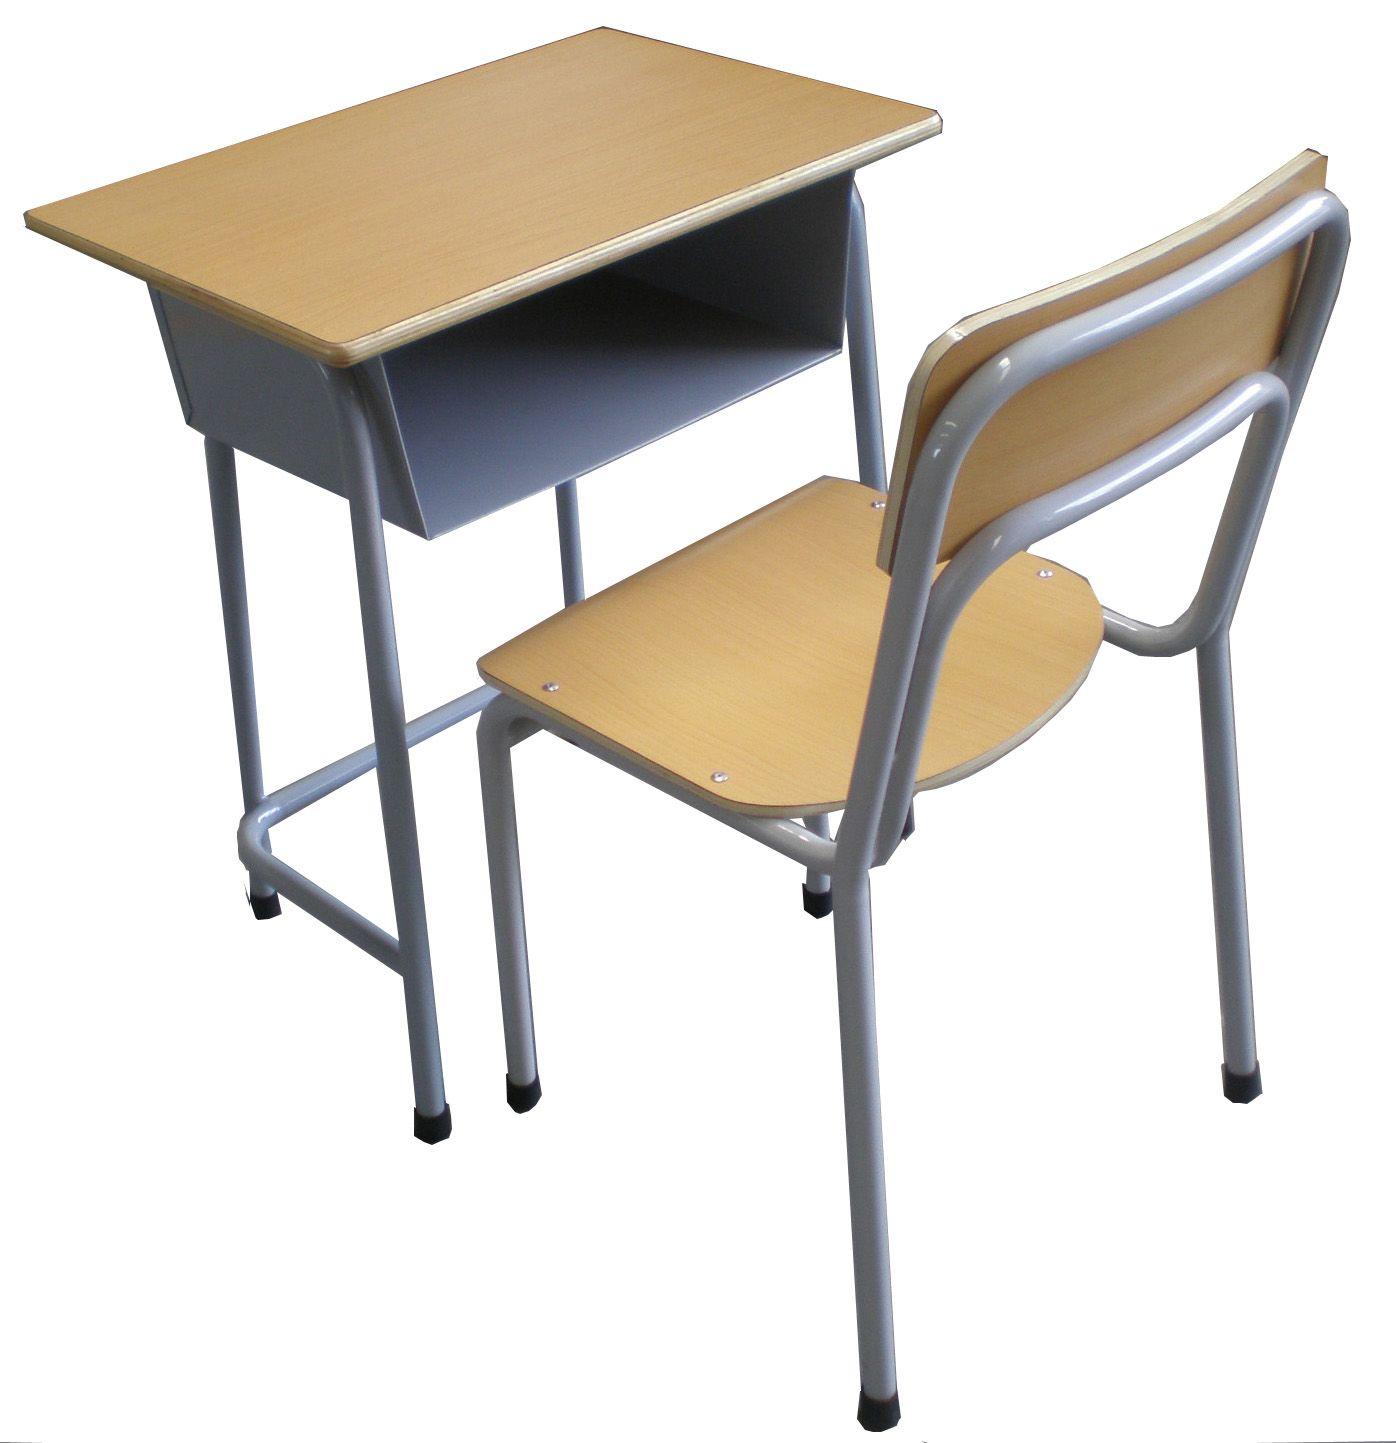 Surprising Cheap Price Factory Study Desk Single School Student Desk And Chair Set For School Furniture Buy Single Desk And Chair School Furniture Study Desk Short Links Chair Design For Home Short Linksinfo